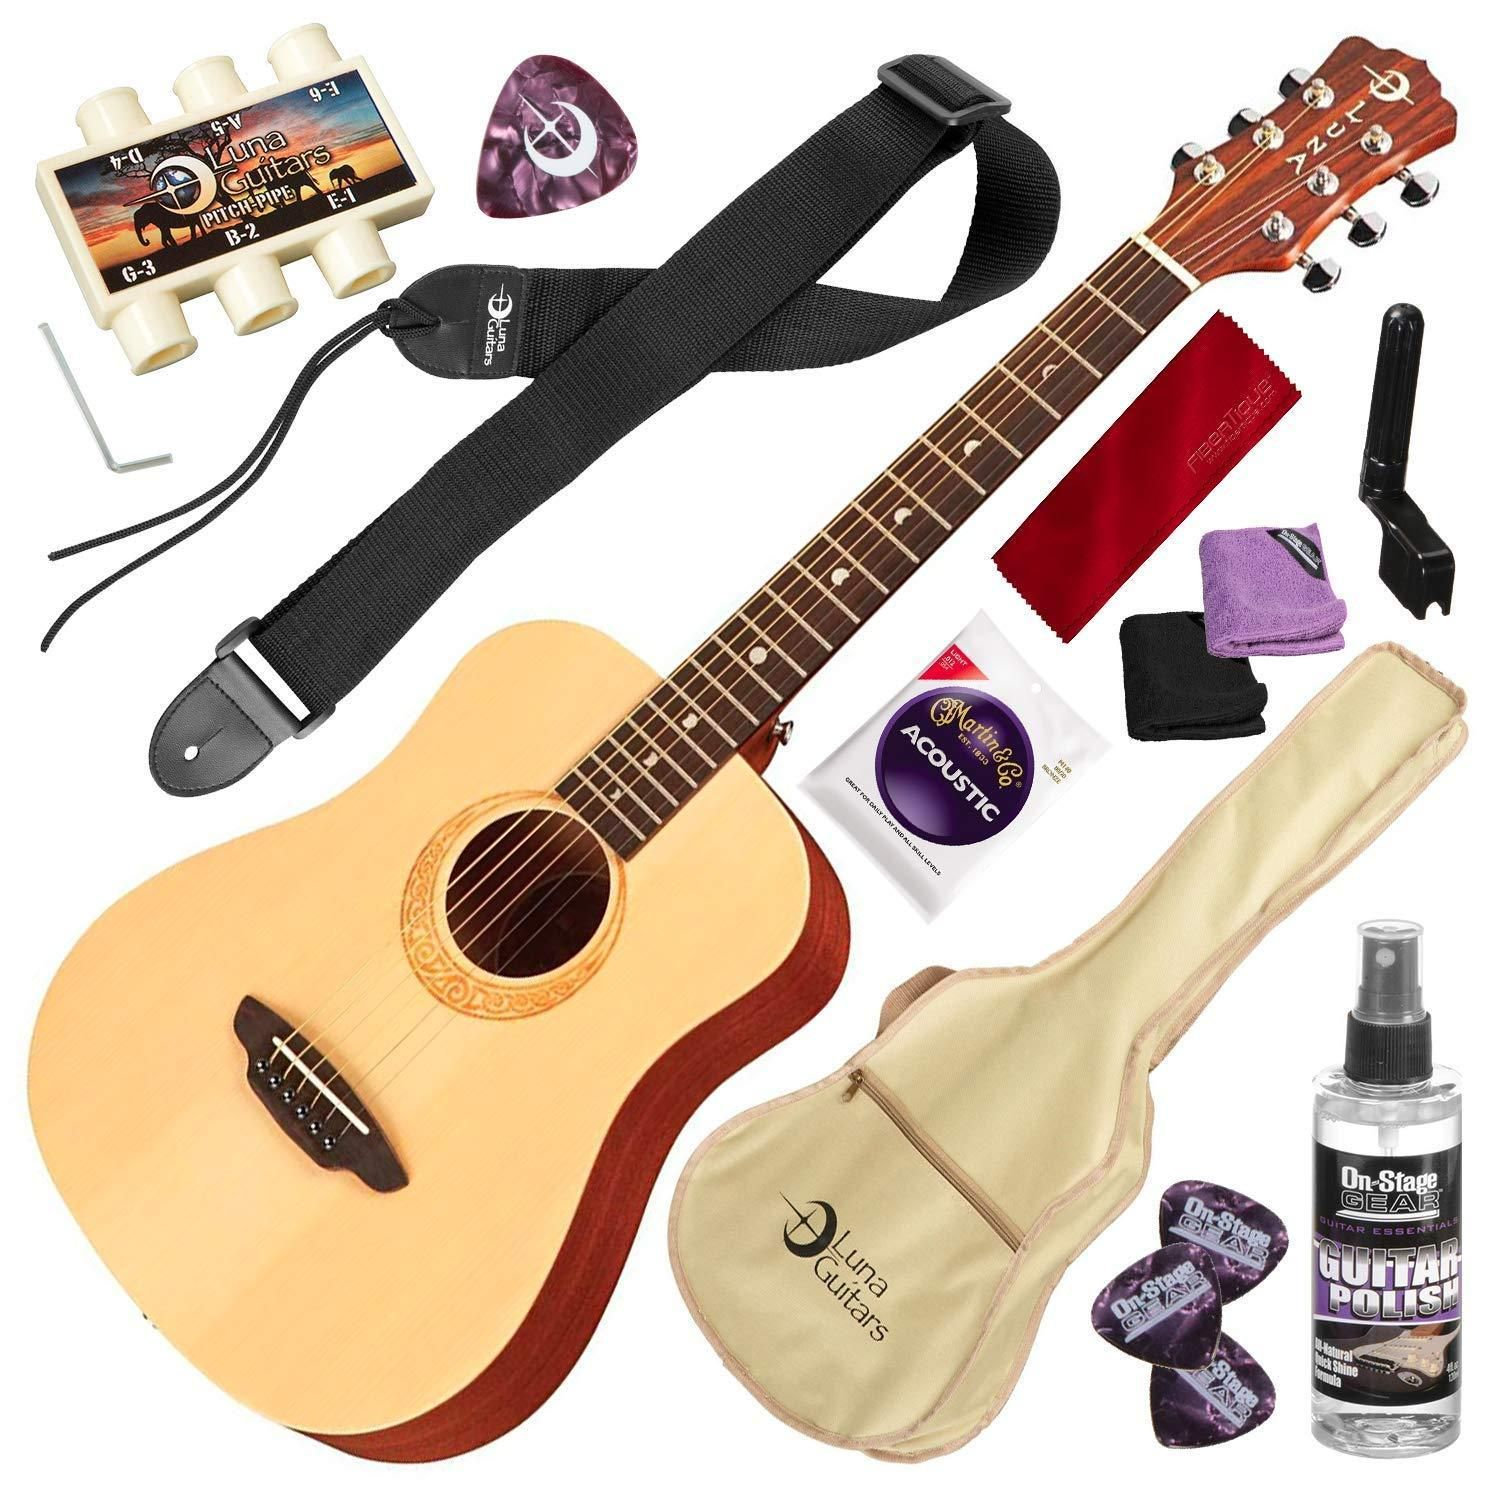 Lomeve Guitar Accessories Kit Include Acoustic Guitar Acoustic Guitar Guitar Accessories Acoustic